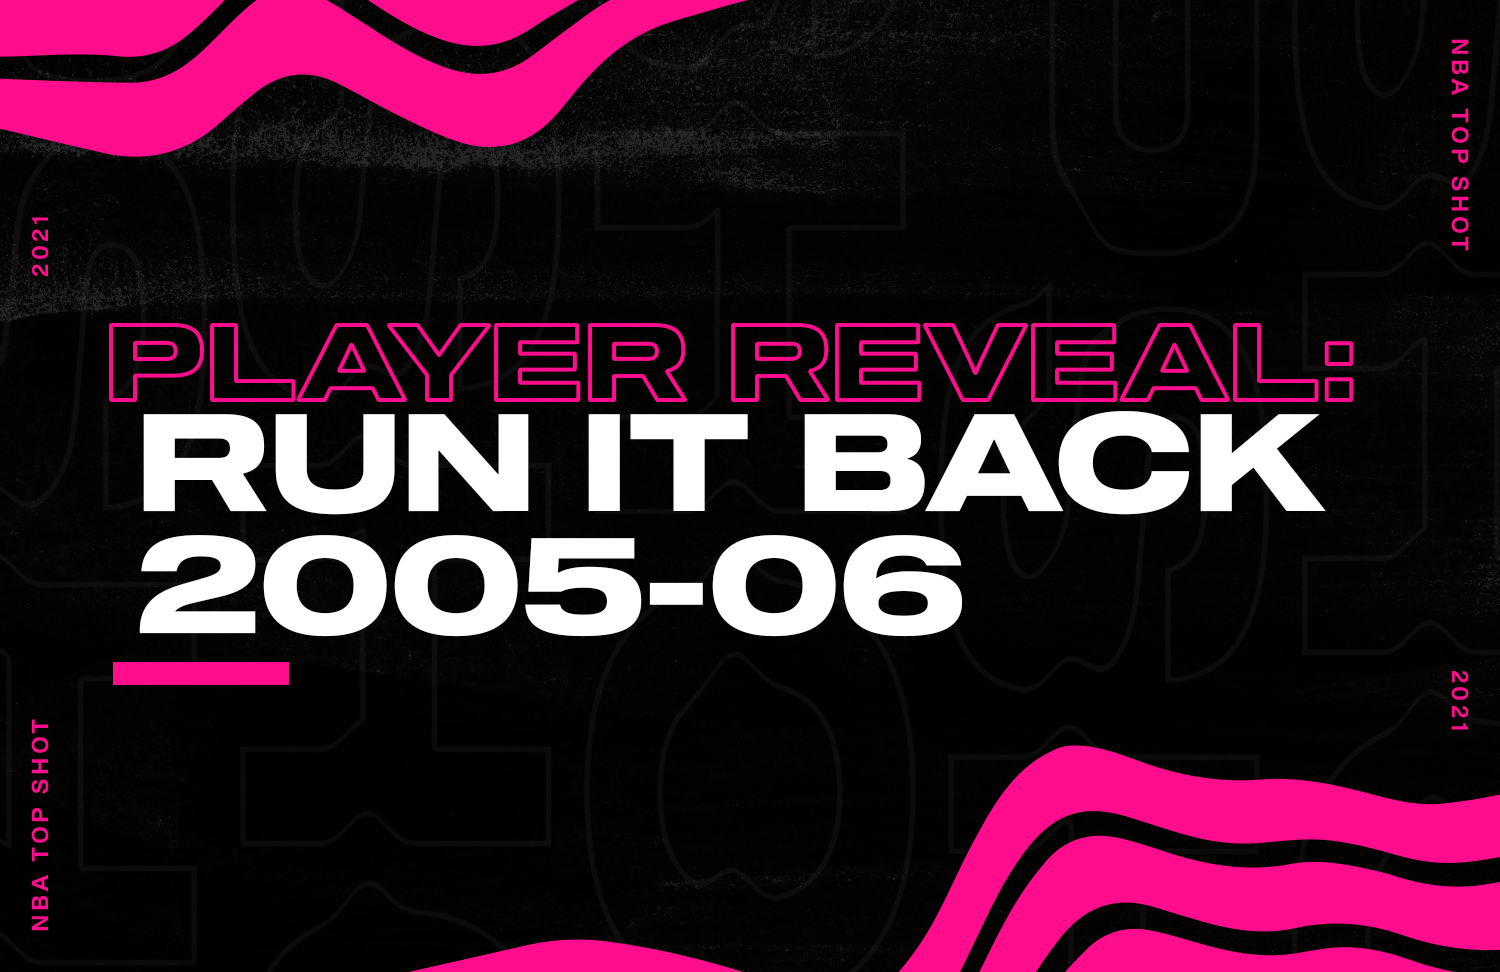 Find out everything you need to know about Run It Back 2005-06 right here...